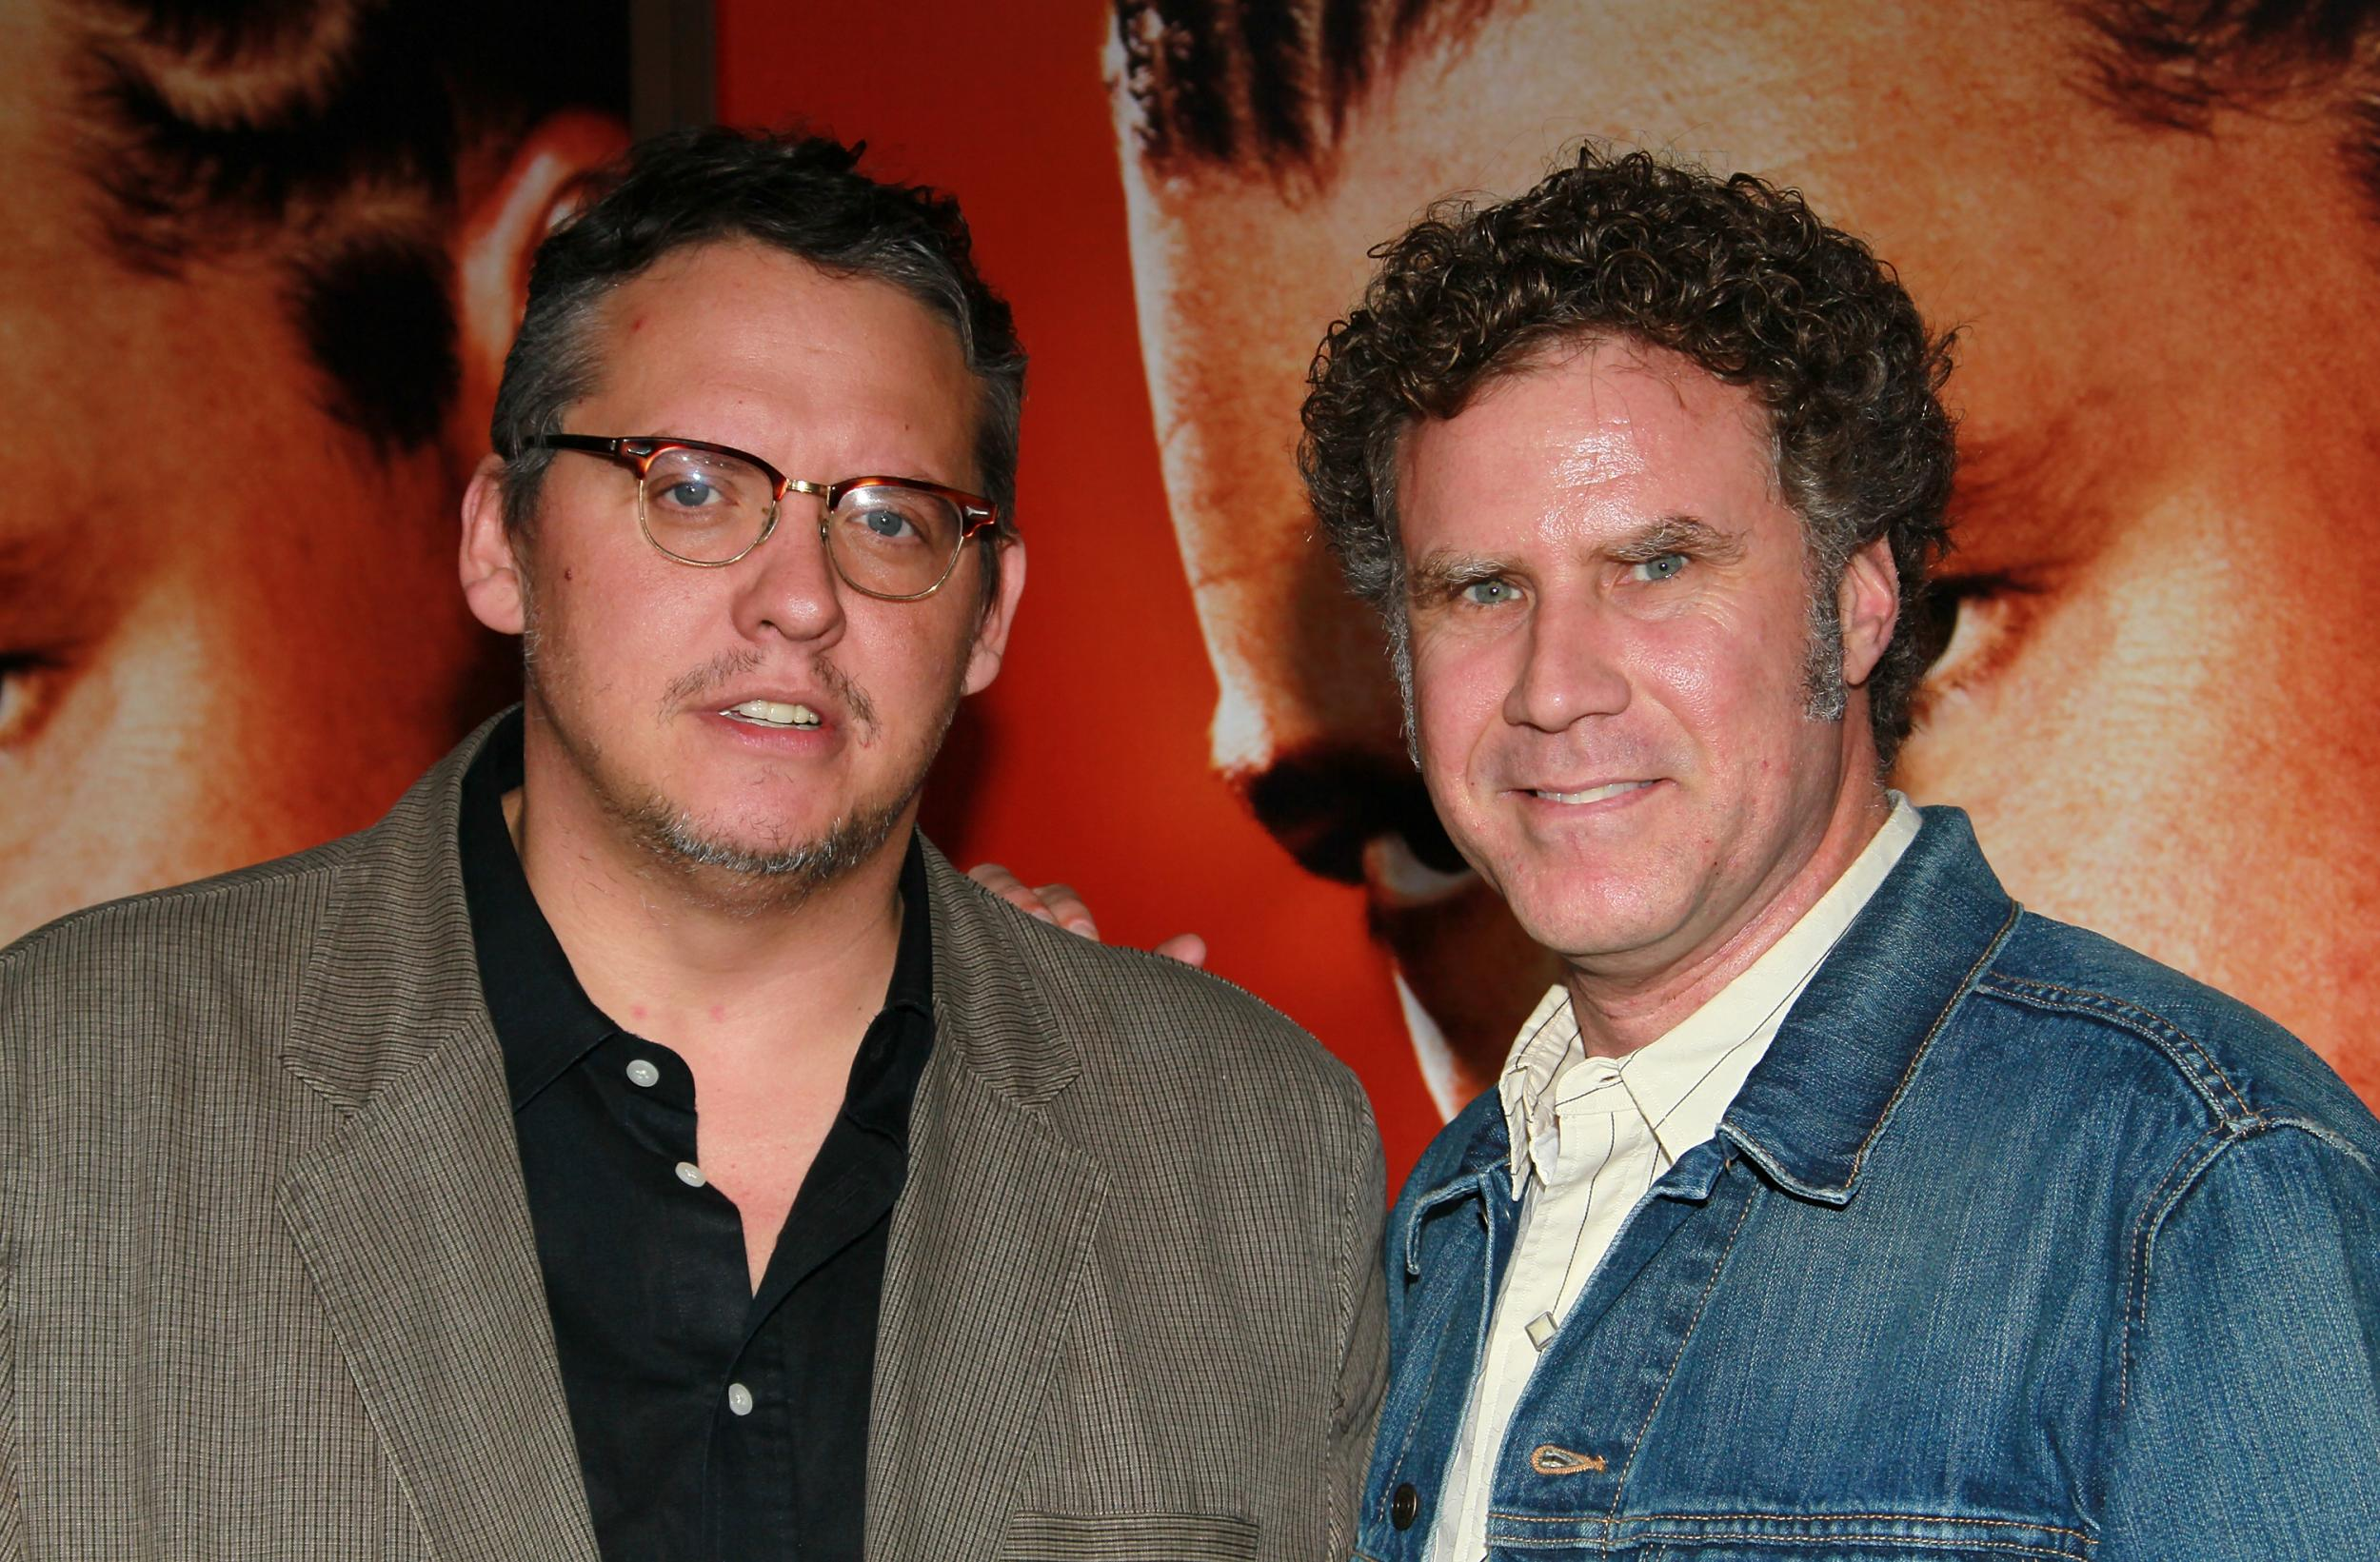 Will Ferrell and Adam McKay to part ways as production team